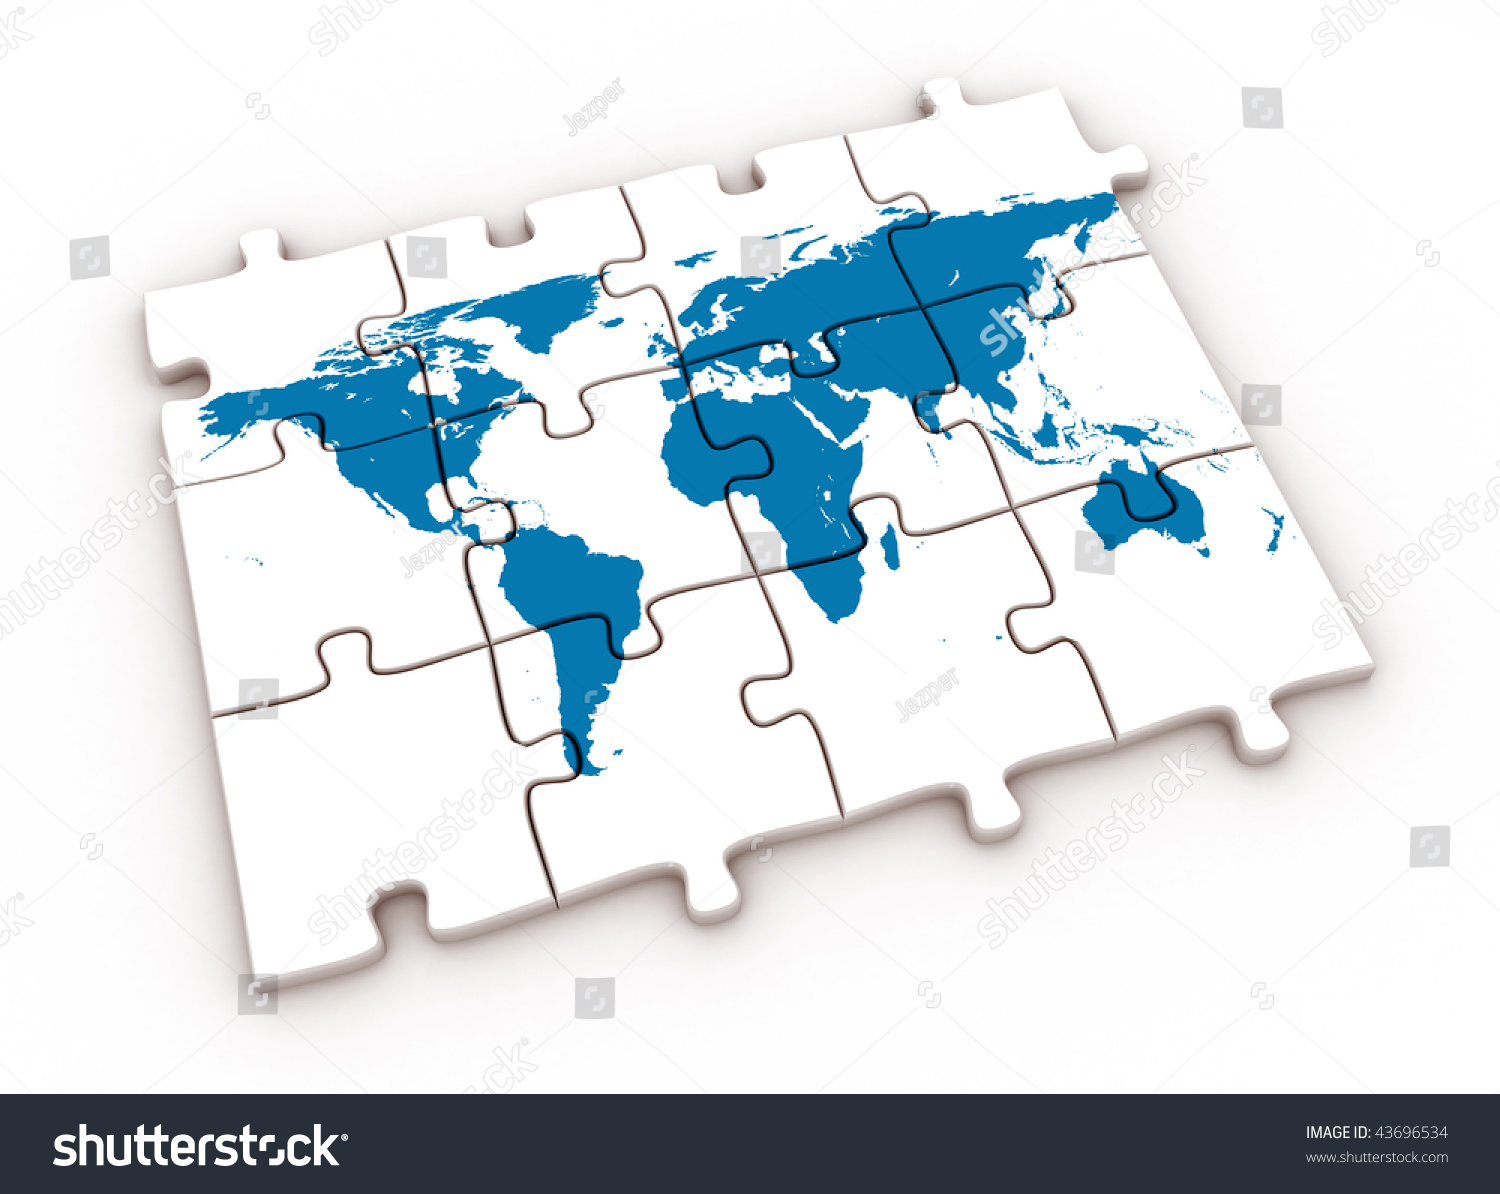 Puzzle World Map Photo 43696534 Shutterstock – Map World Puzzle